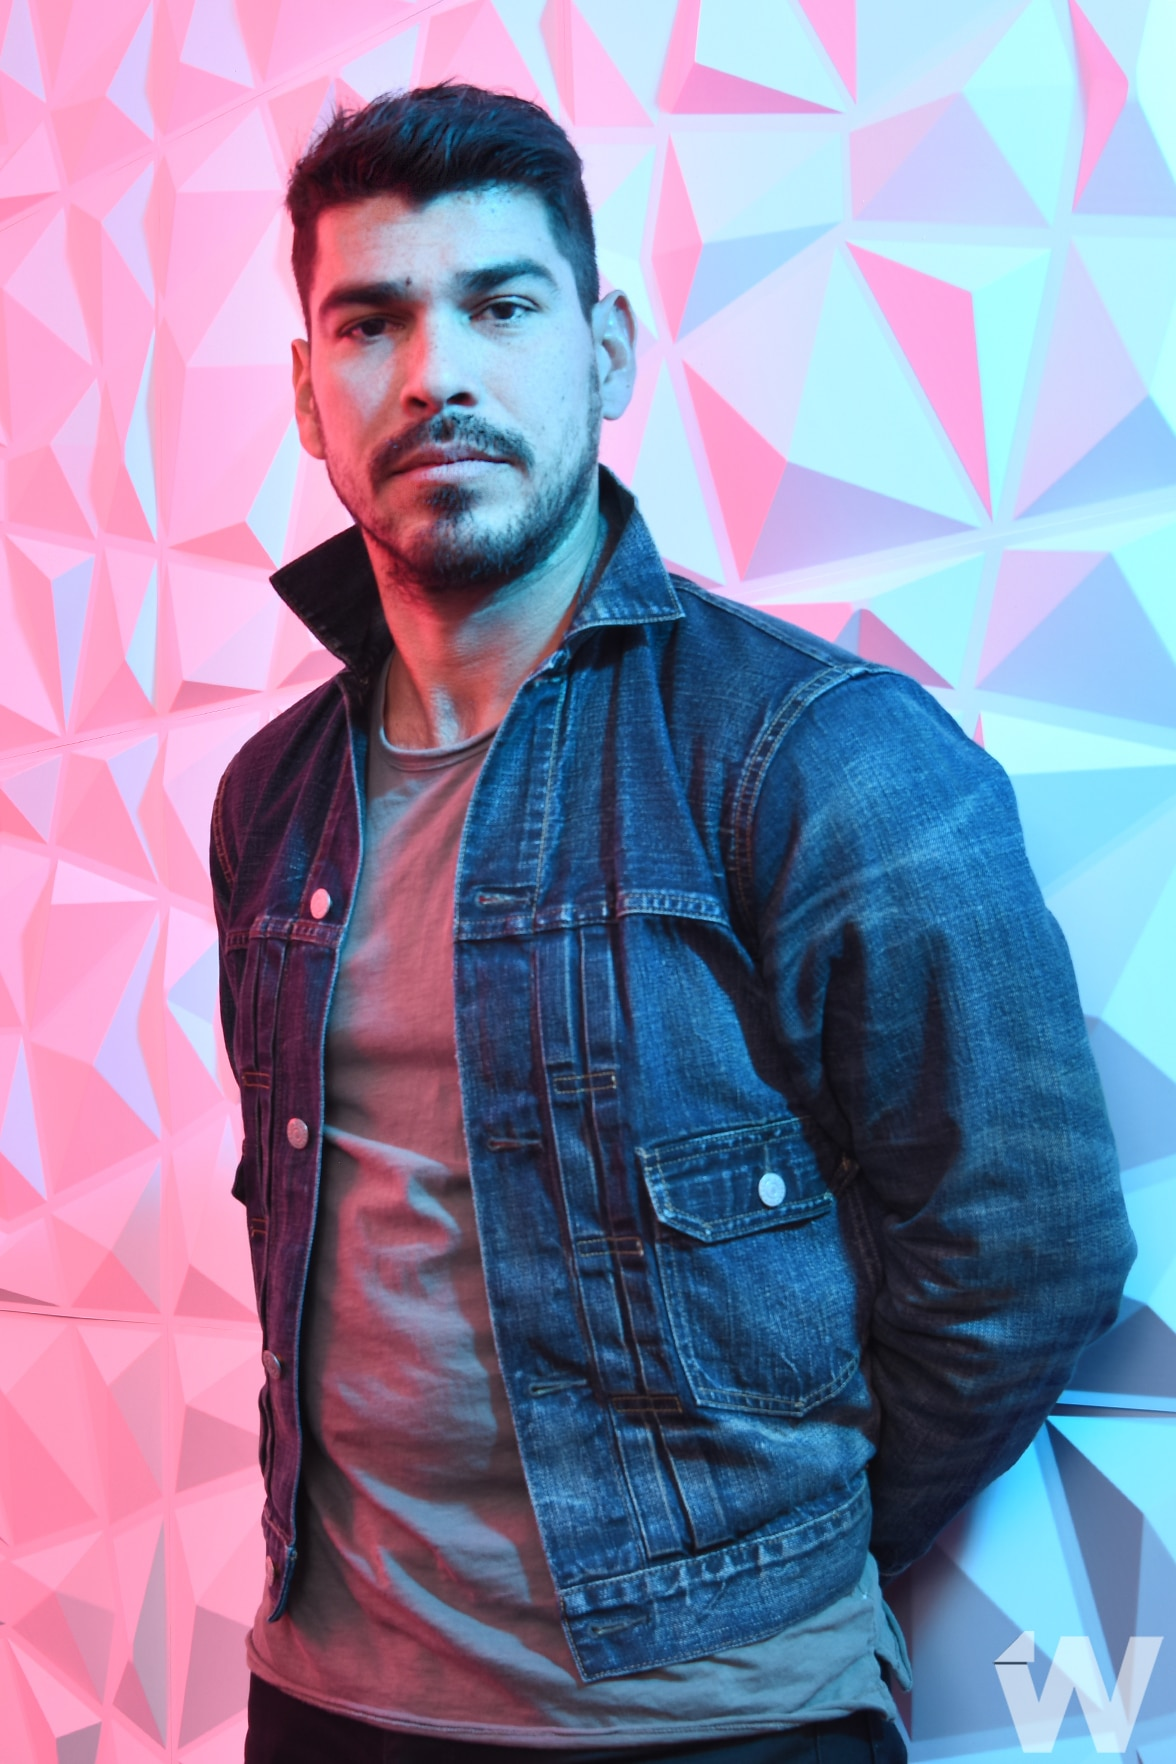 RAUL CASTILLO We The Animals